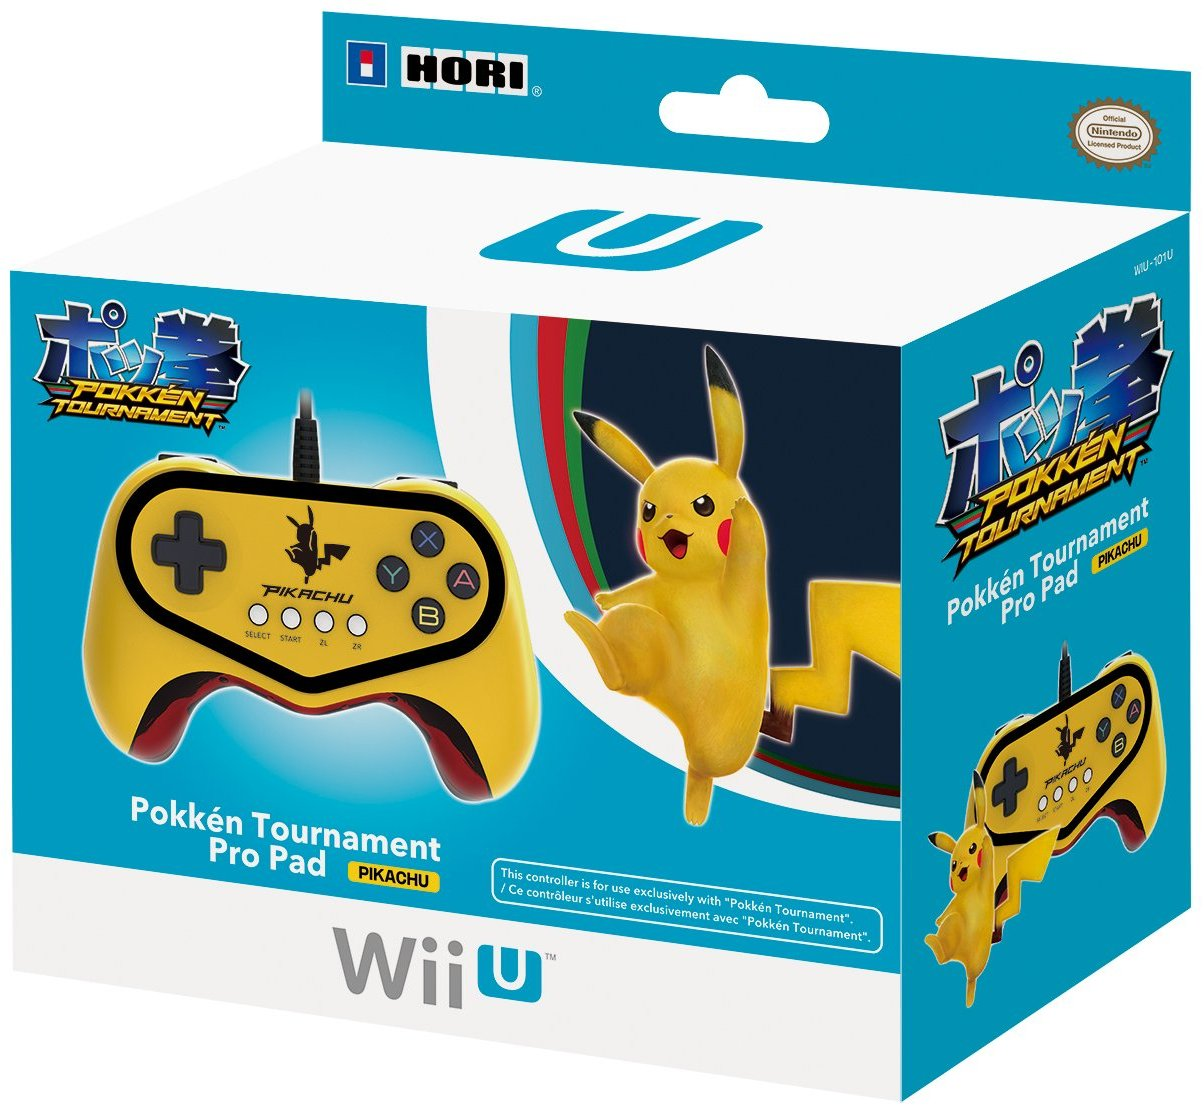 WIIU: CONTROLLER - GENERIC - WIRED - POKKEN TOURNAMENT PRO PAD - PIKACHU (USED)